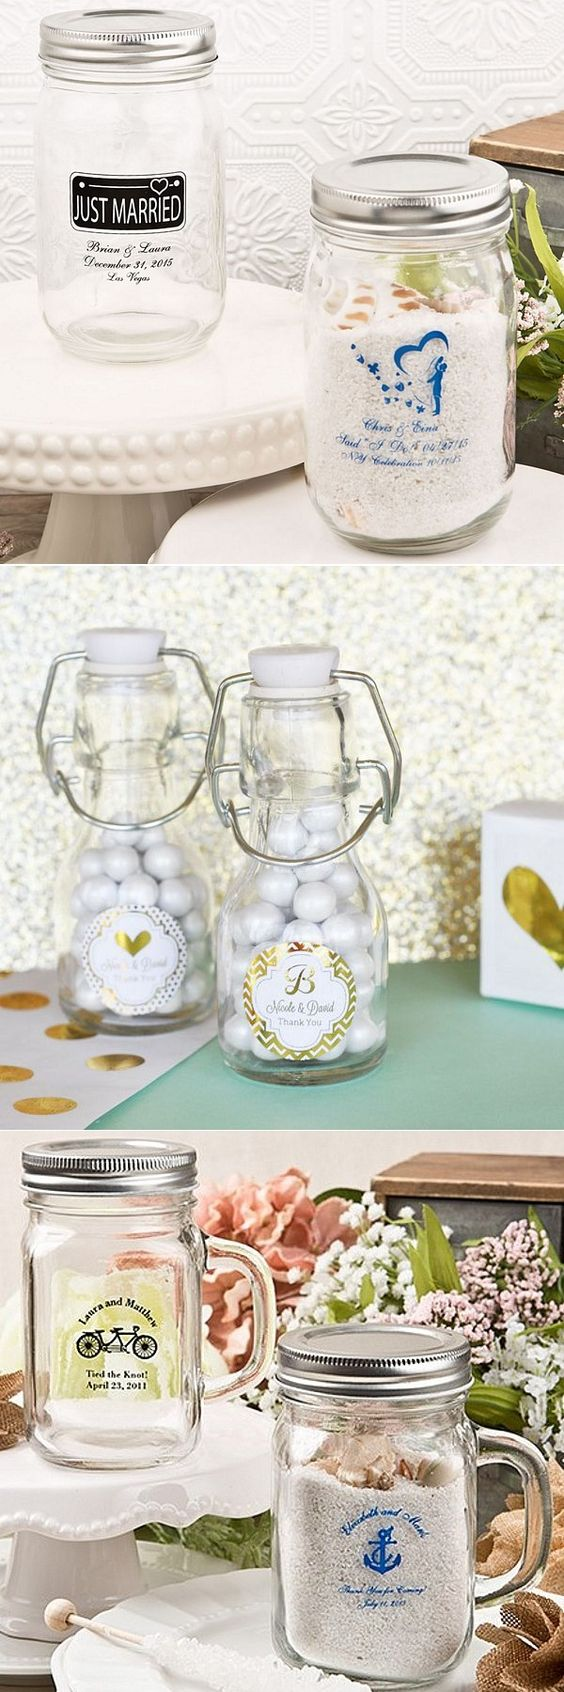 jars filled with pickles wedding favors gifts photos brides - 28 ...